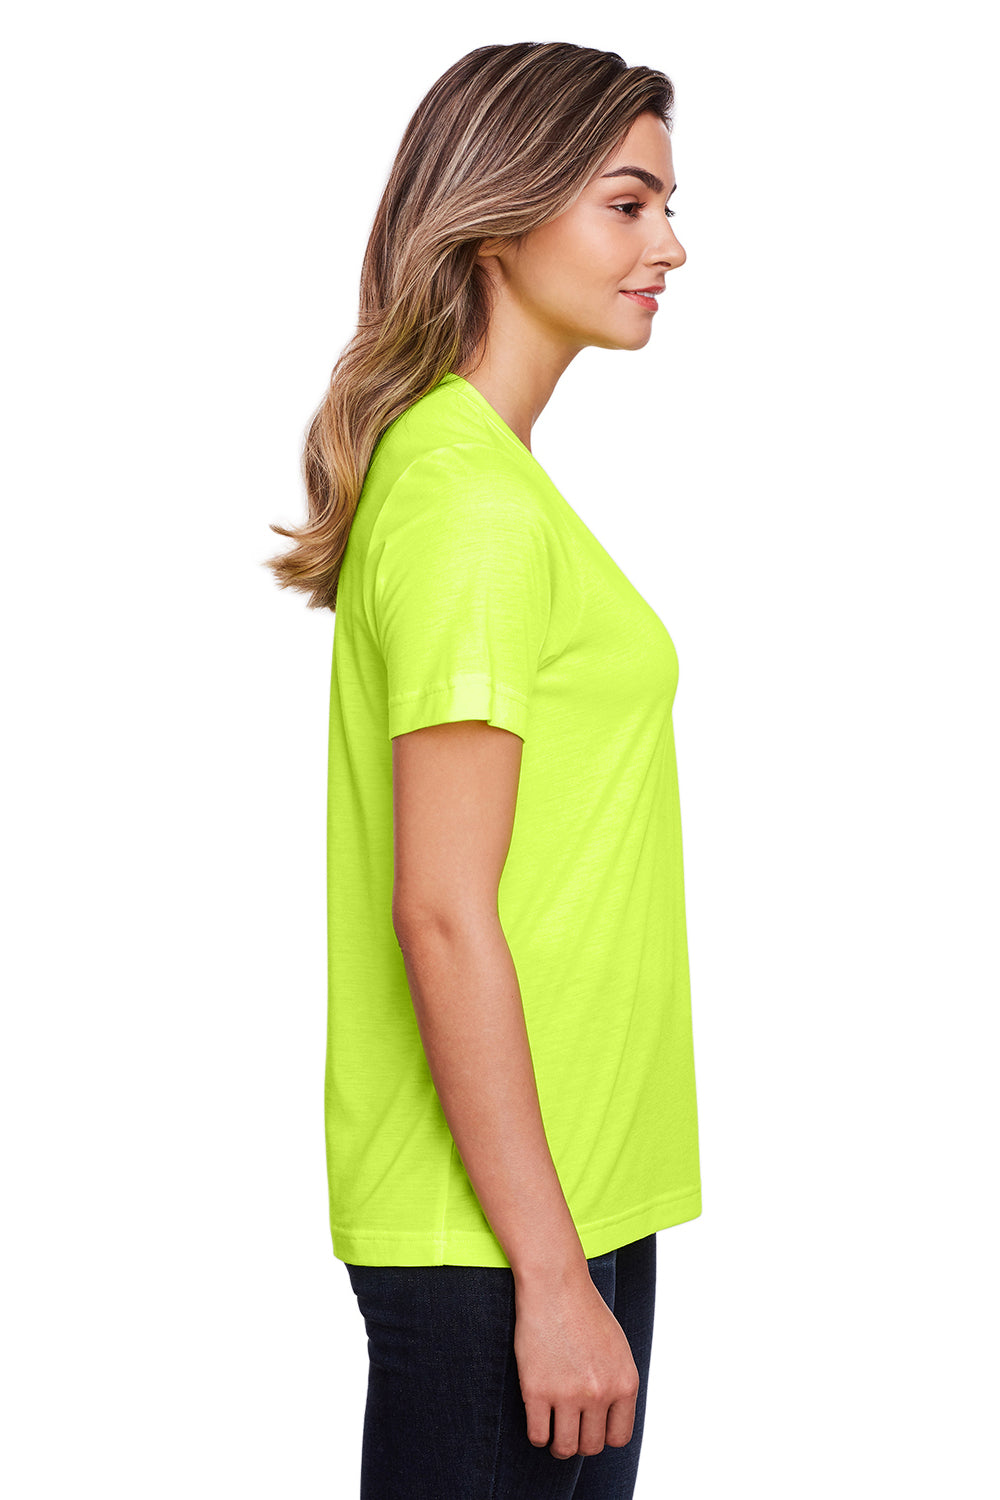 Core 365 CE111W Womens Fusion ChromaSoft Performance Moisture Wicking Short Sleeve Scoop Neck T-Shirt Safety Yellow Side